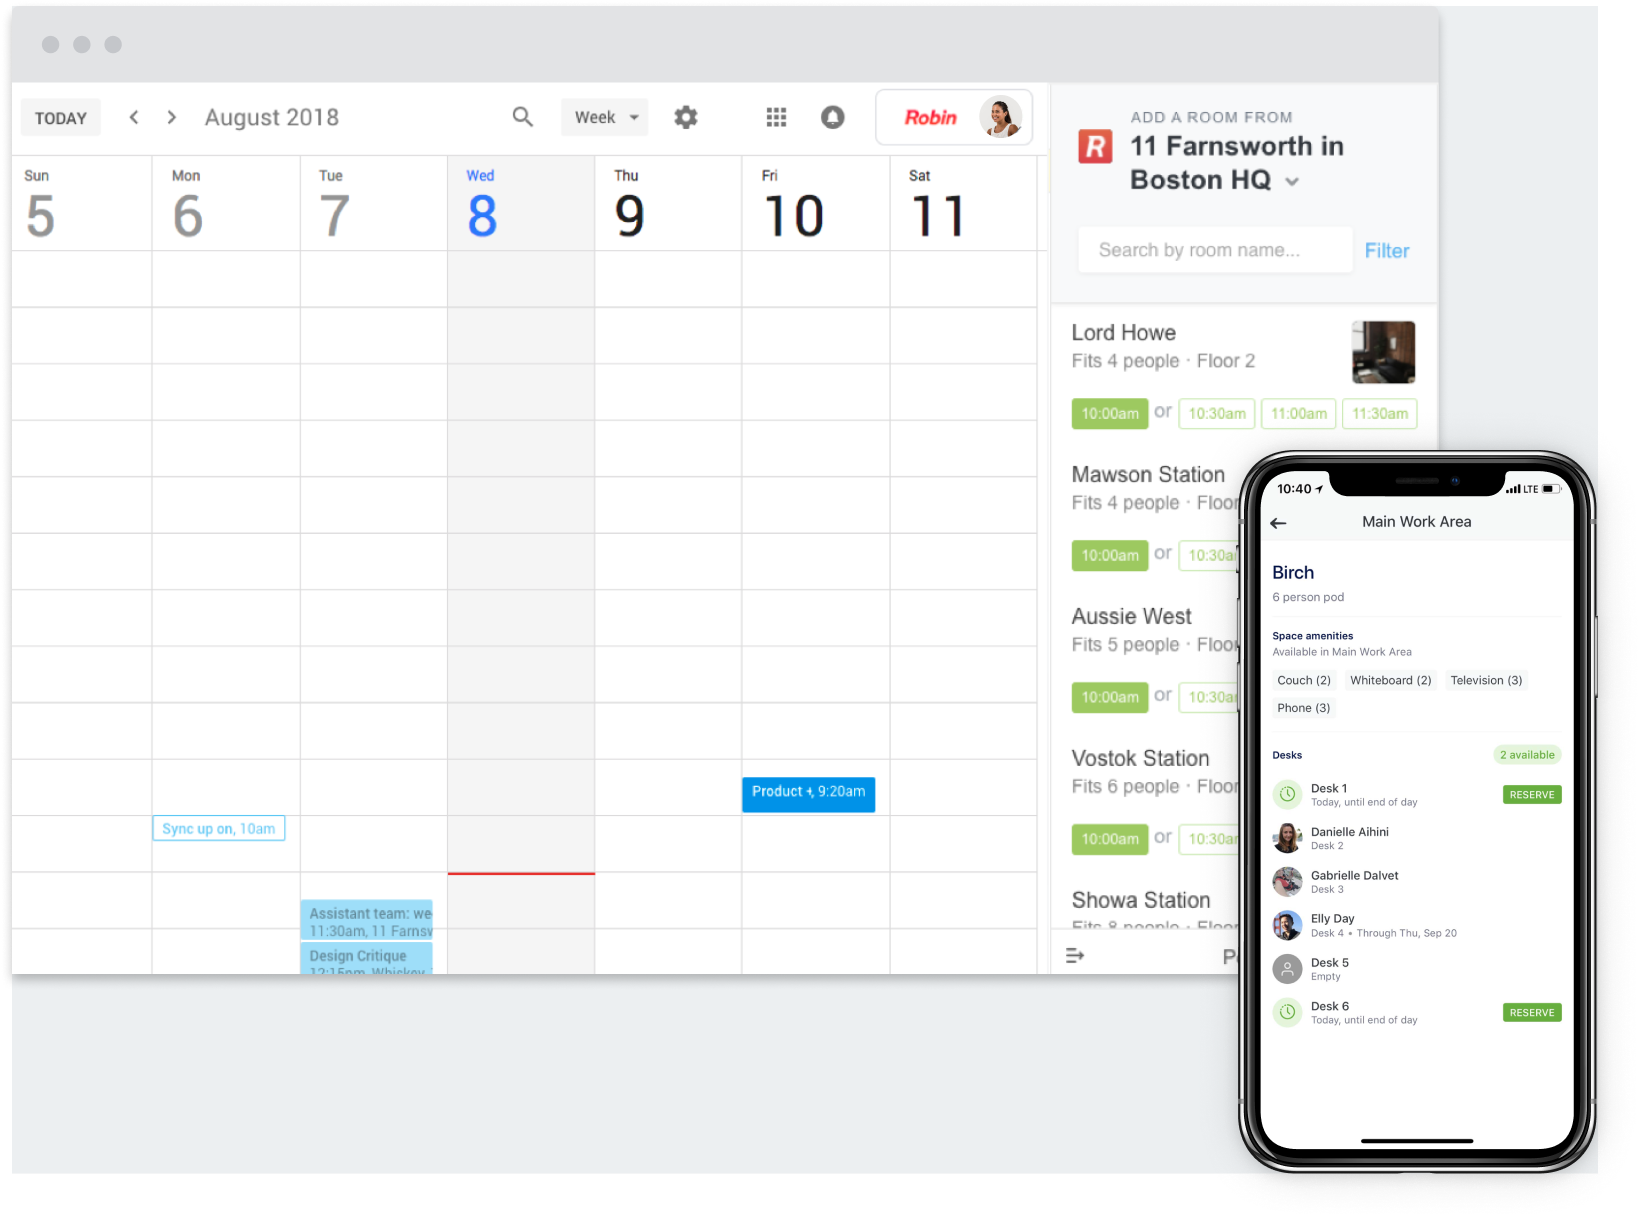 Search and find the right room for the right time. Manage calendars from one place, with smart notifications and location-based reminders, via iOS and Android mobile devices.